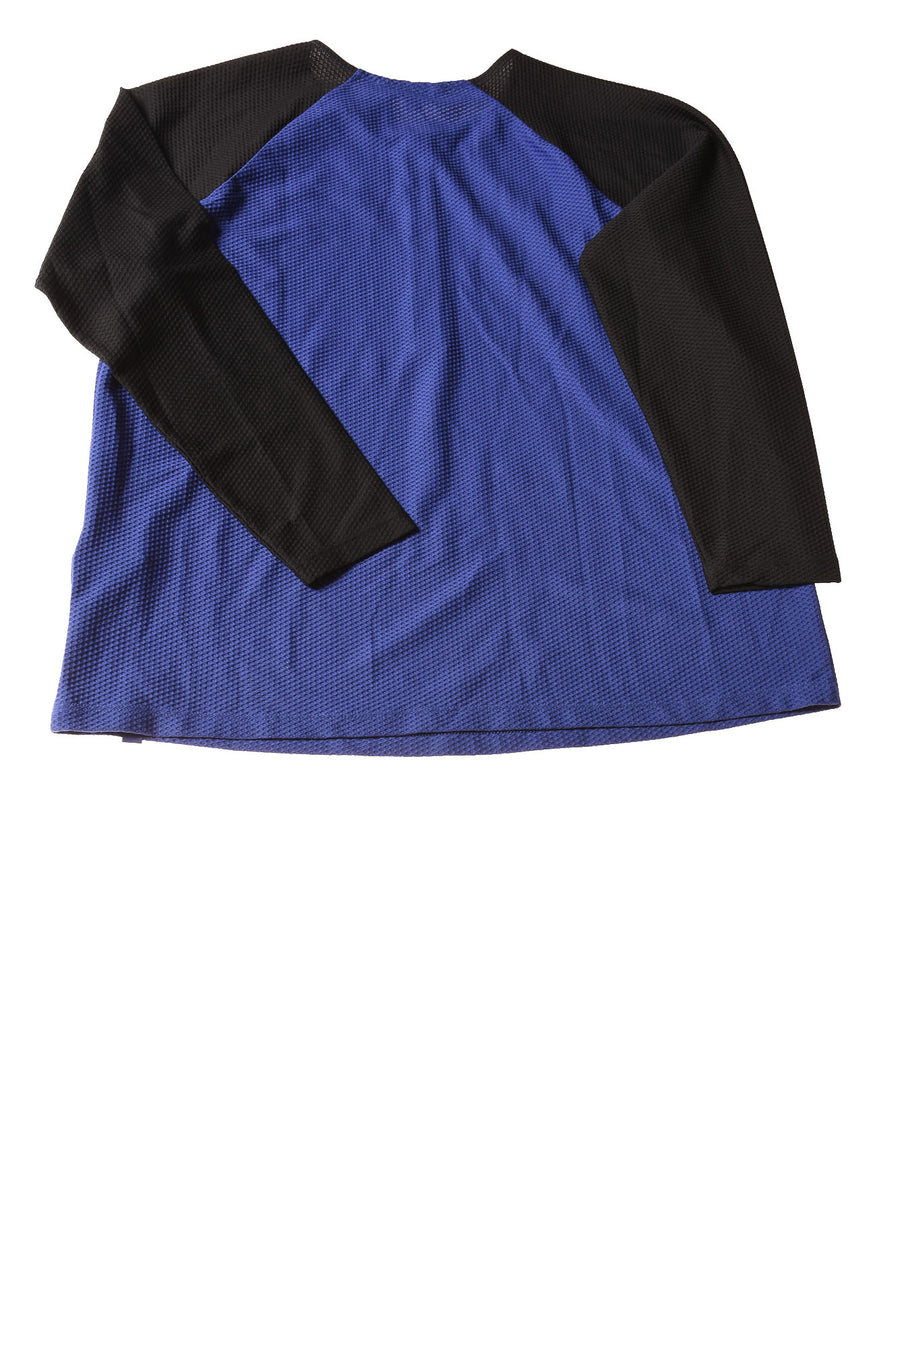 NEW Ralph Lauren Women's Top 1X Blue & Black